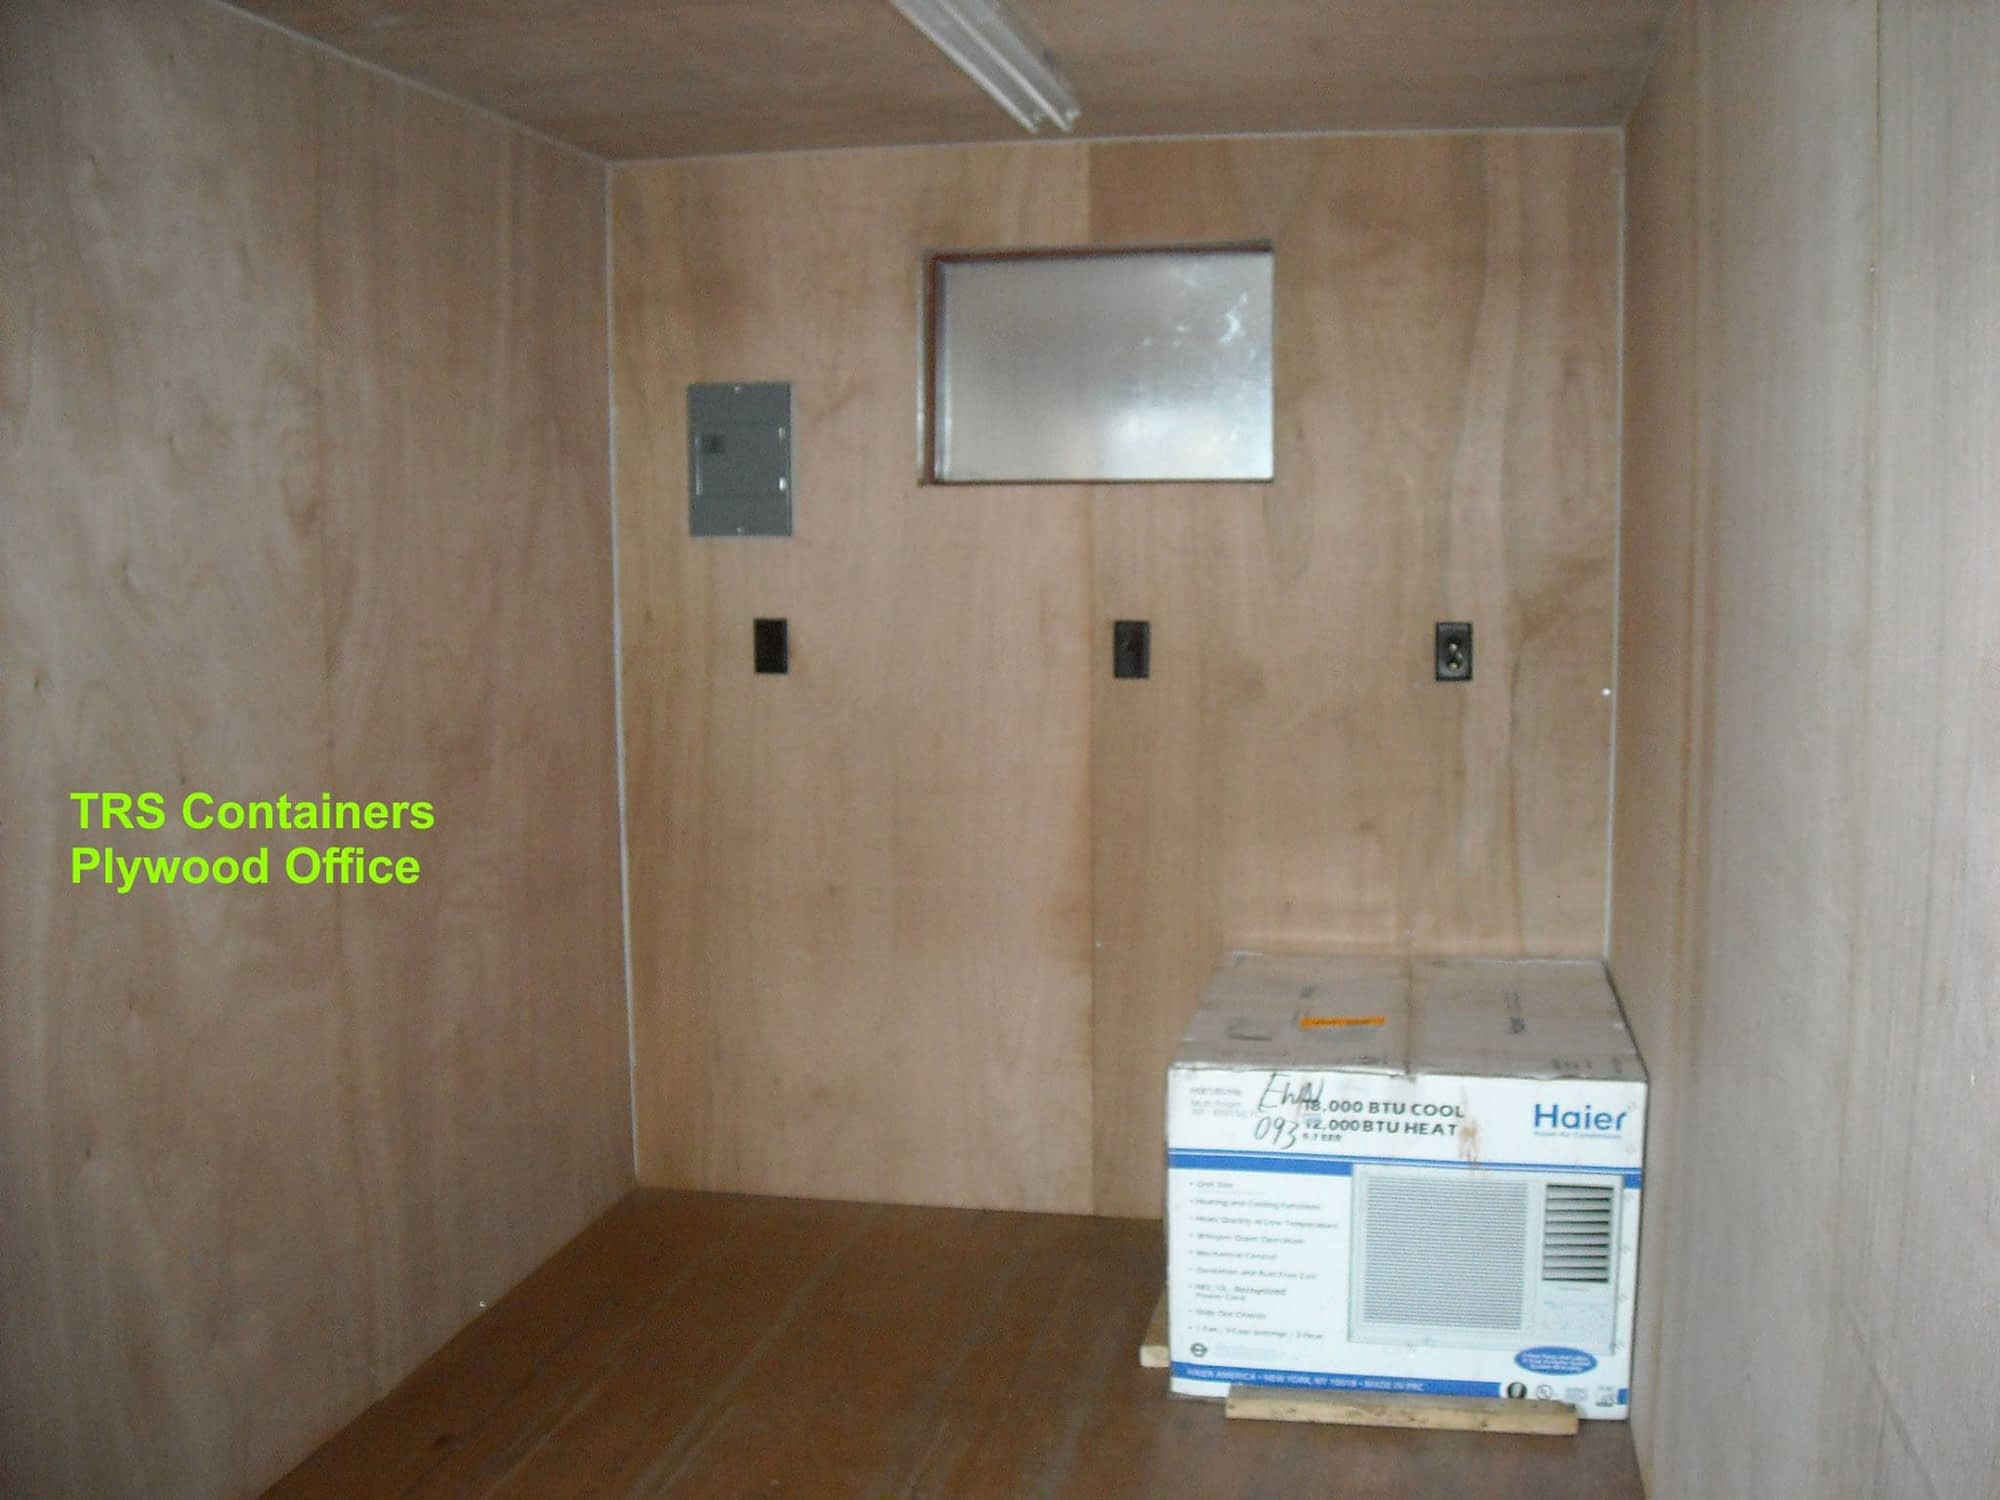 TRS Containers basic plywood lined outfitted office workspace